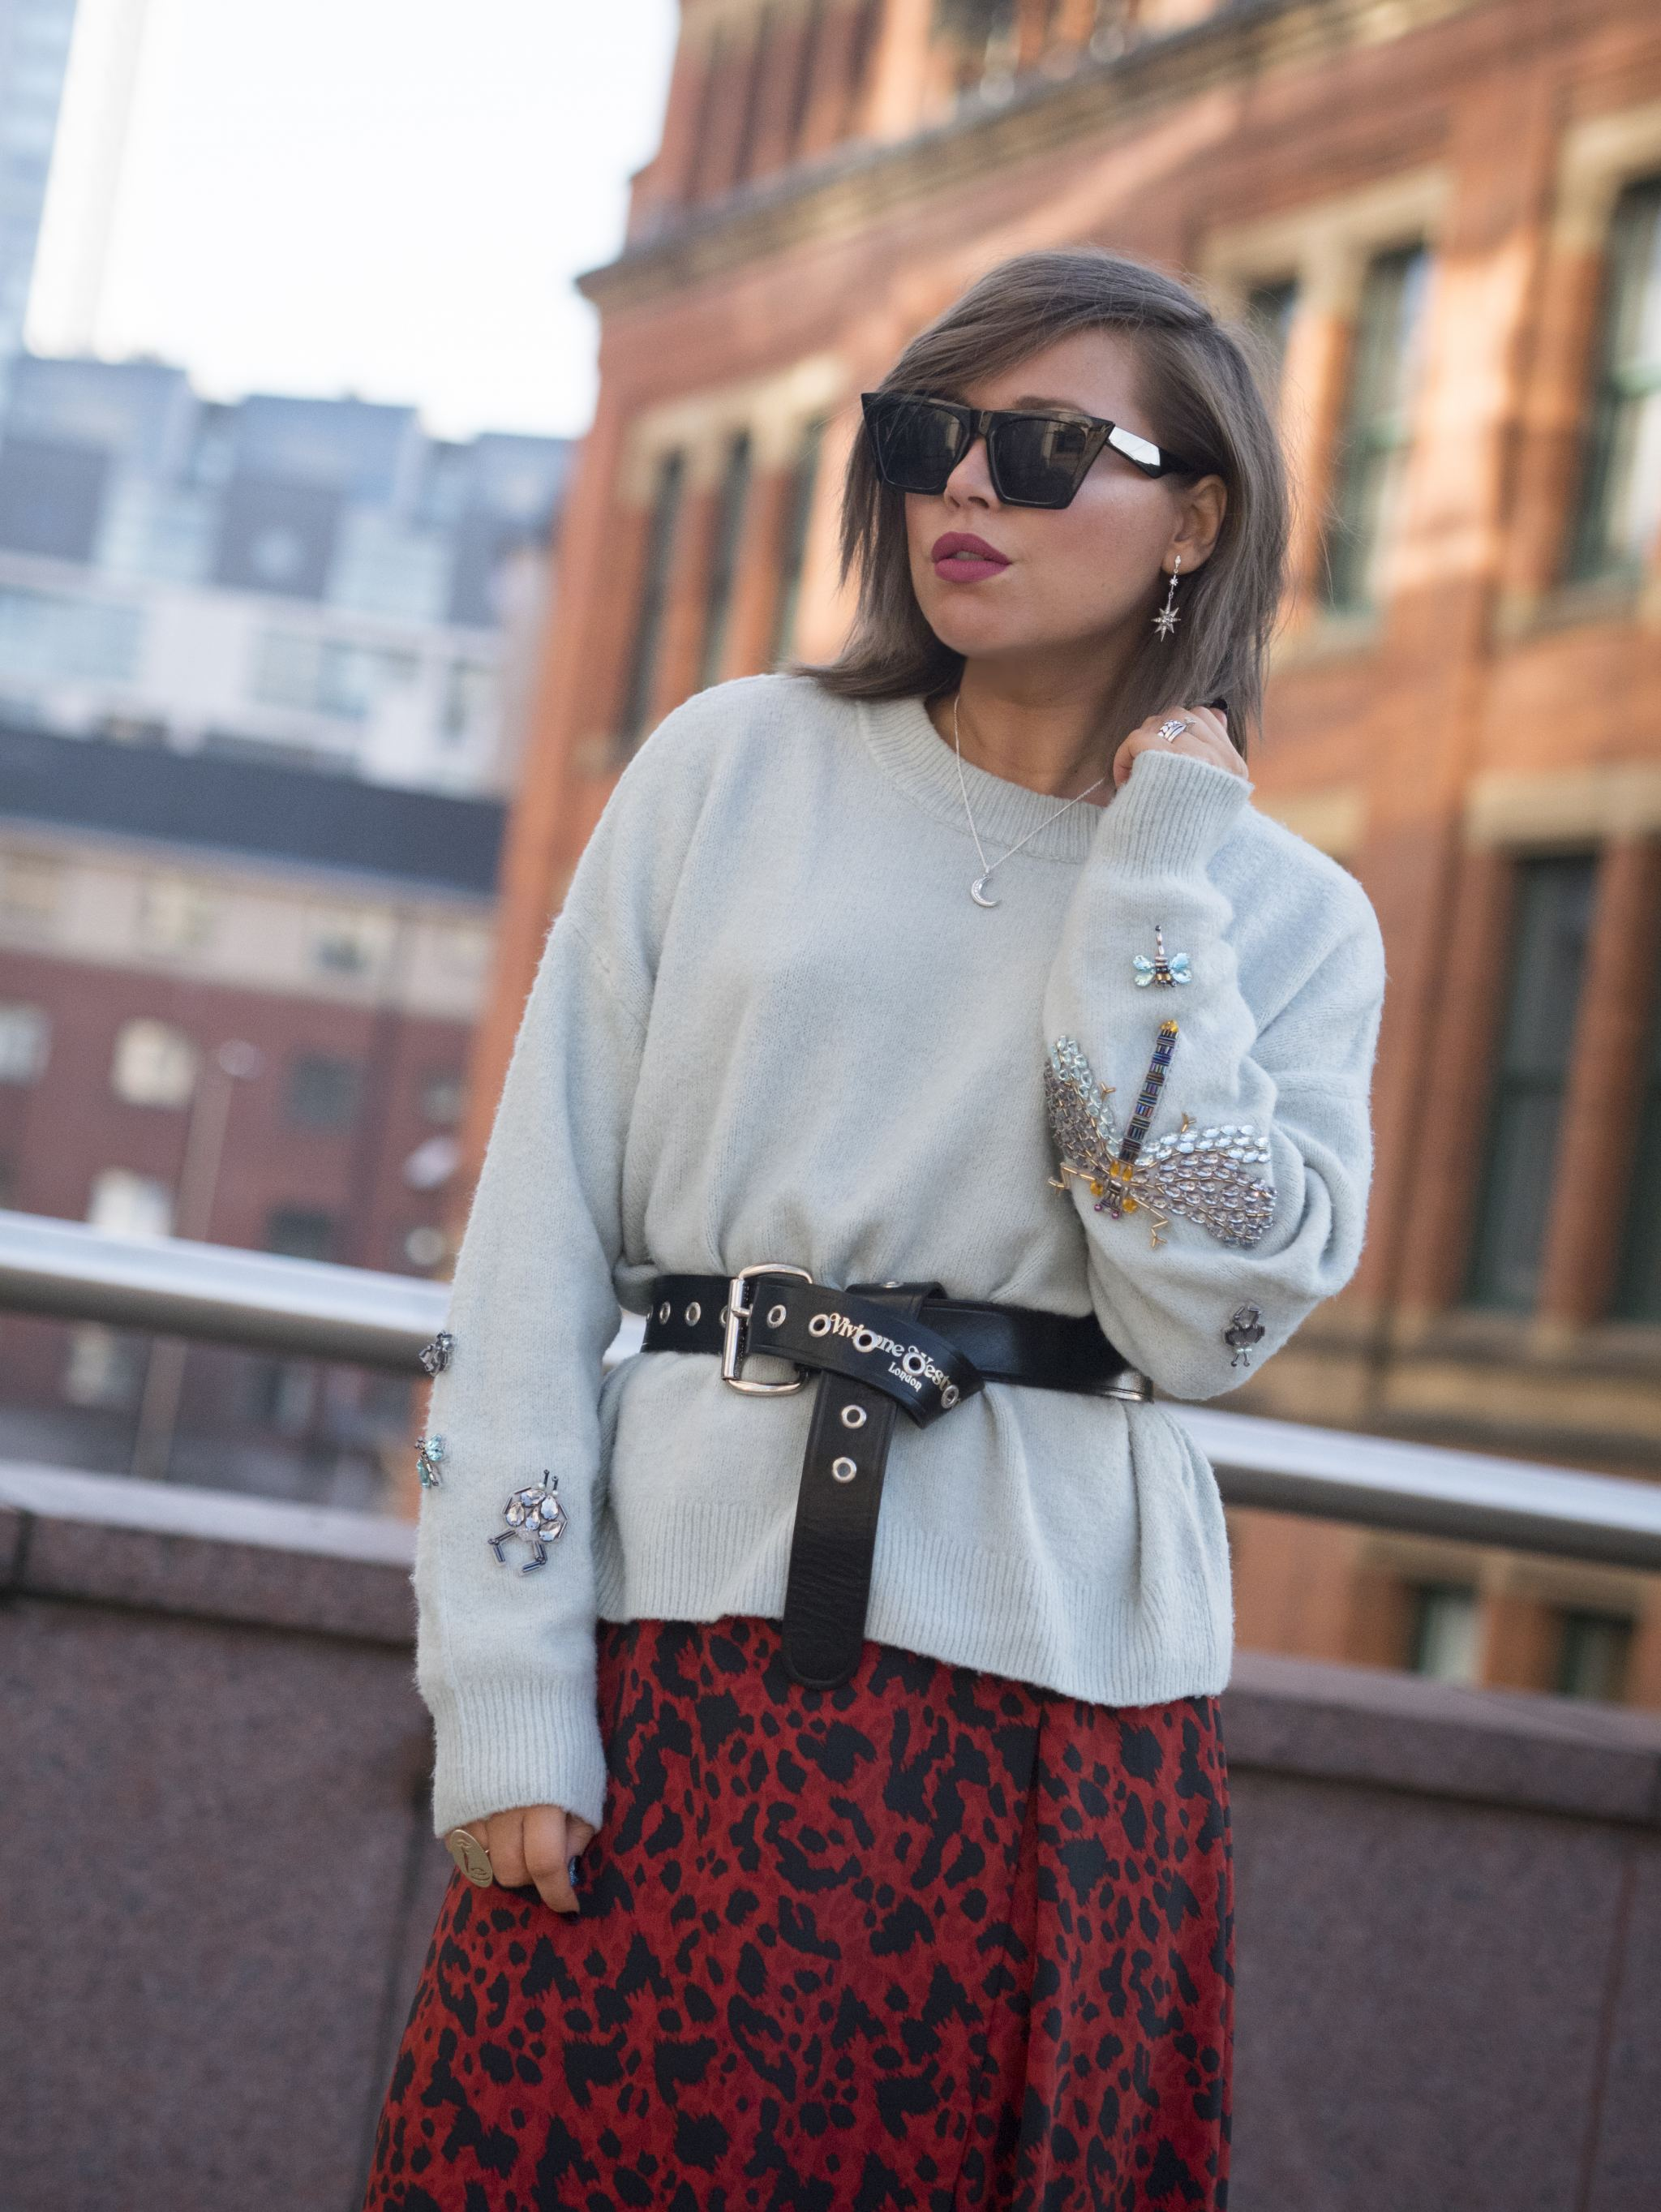 manchester fashion blogger, manchester fashion bloggers, ukblogger, thomsa sabo, thomas sabo jewellery ,Celine sunglasses, manchester bloggers, manchester fashion blogger